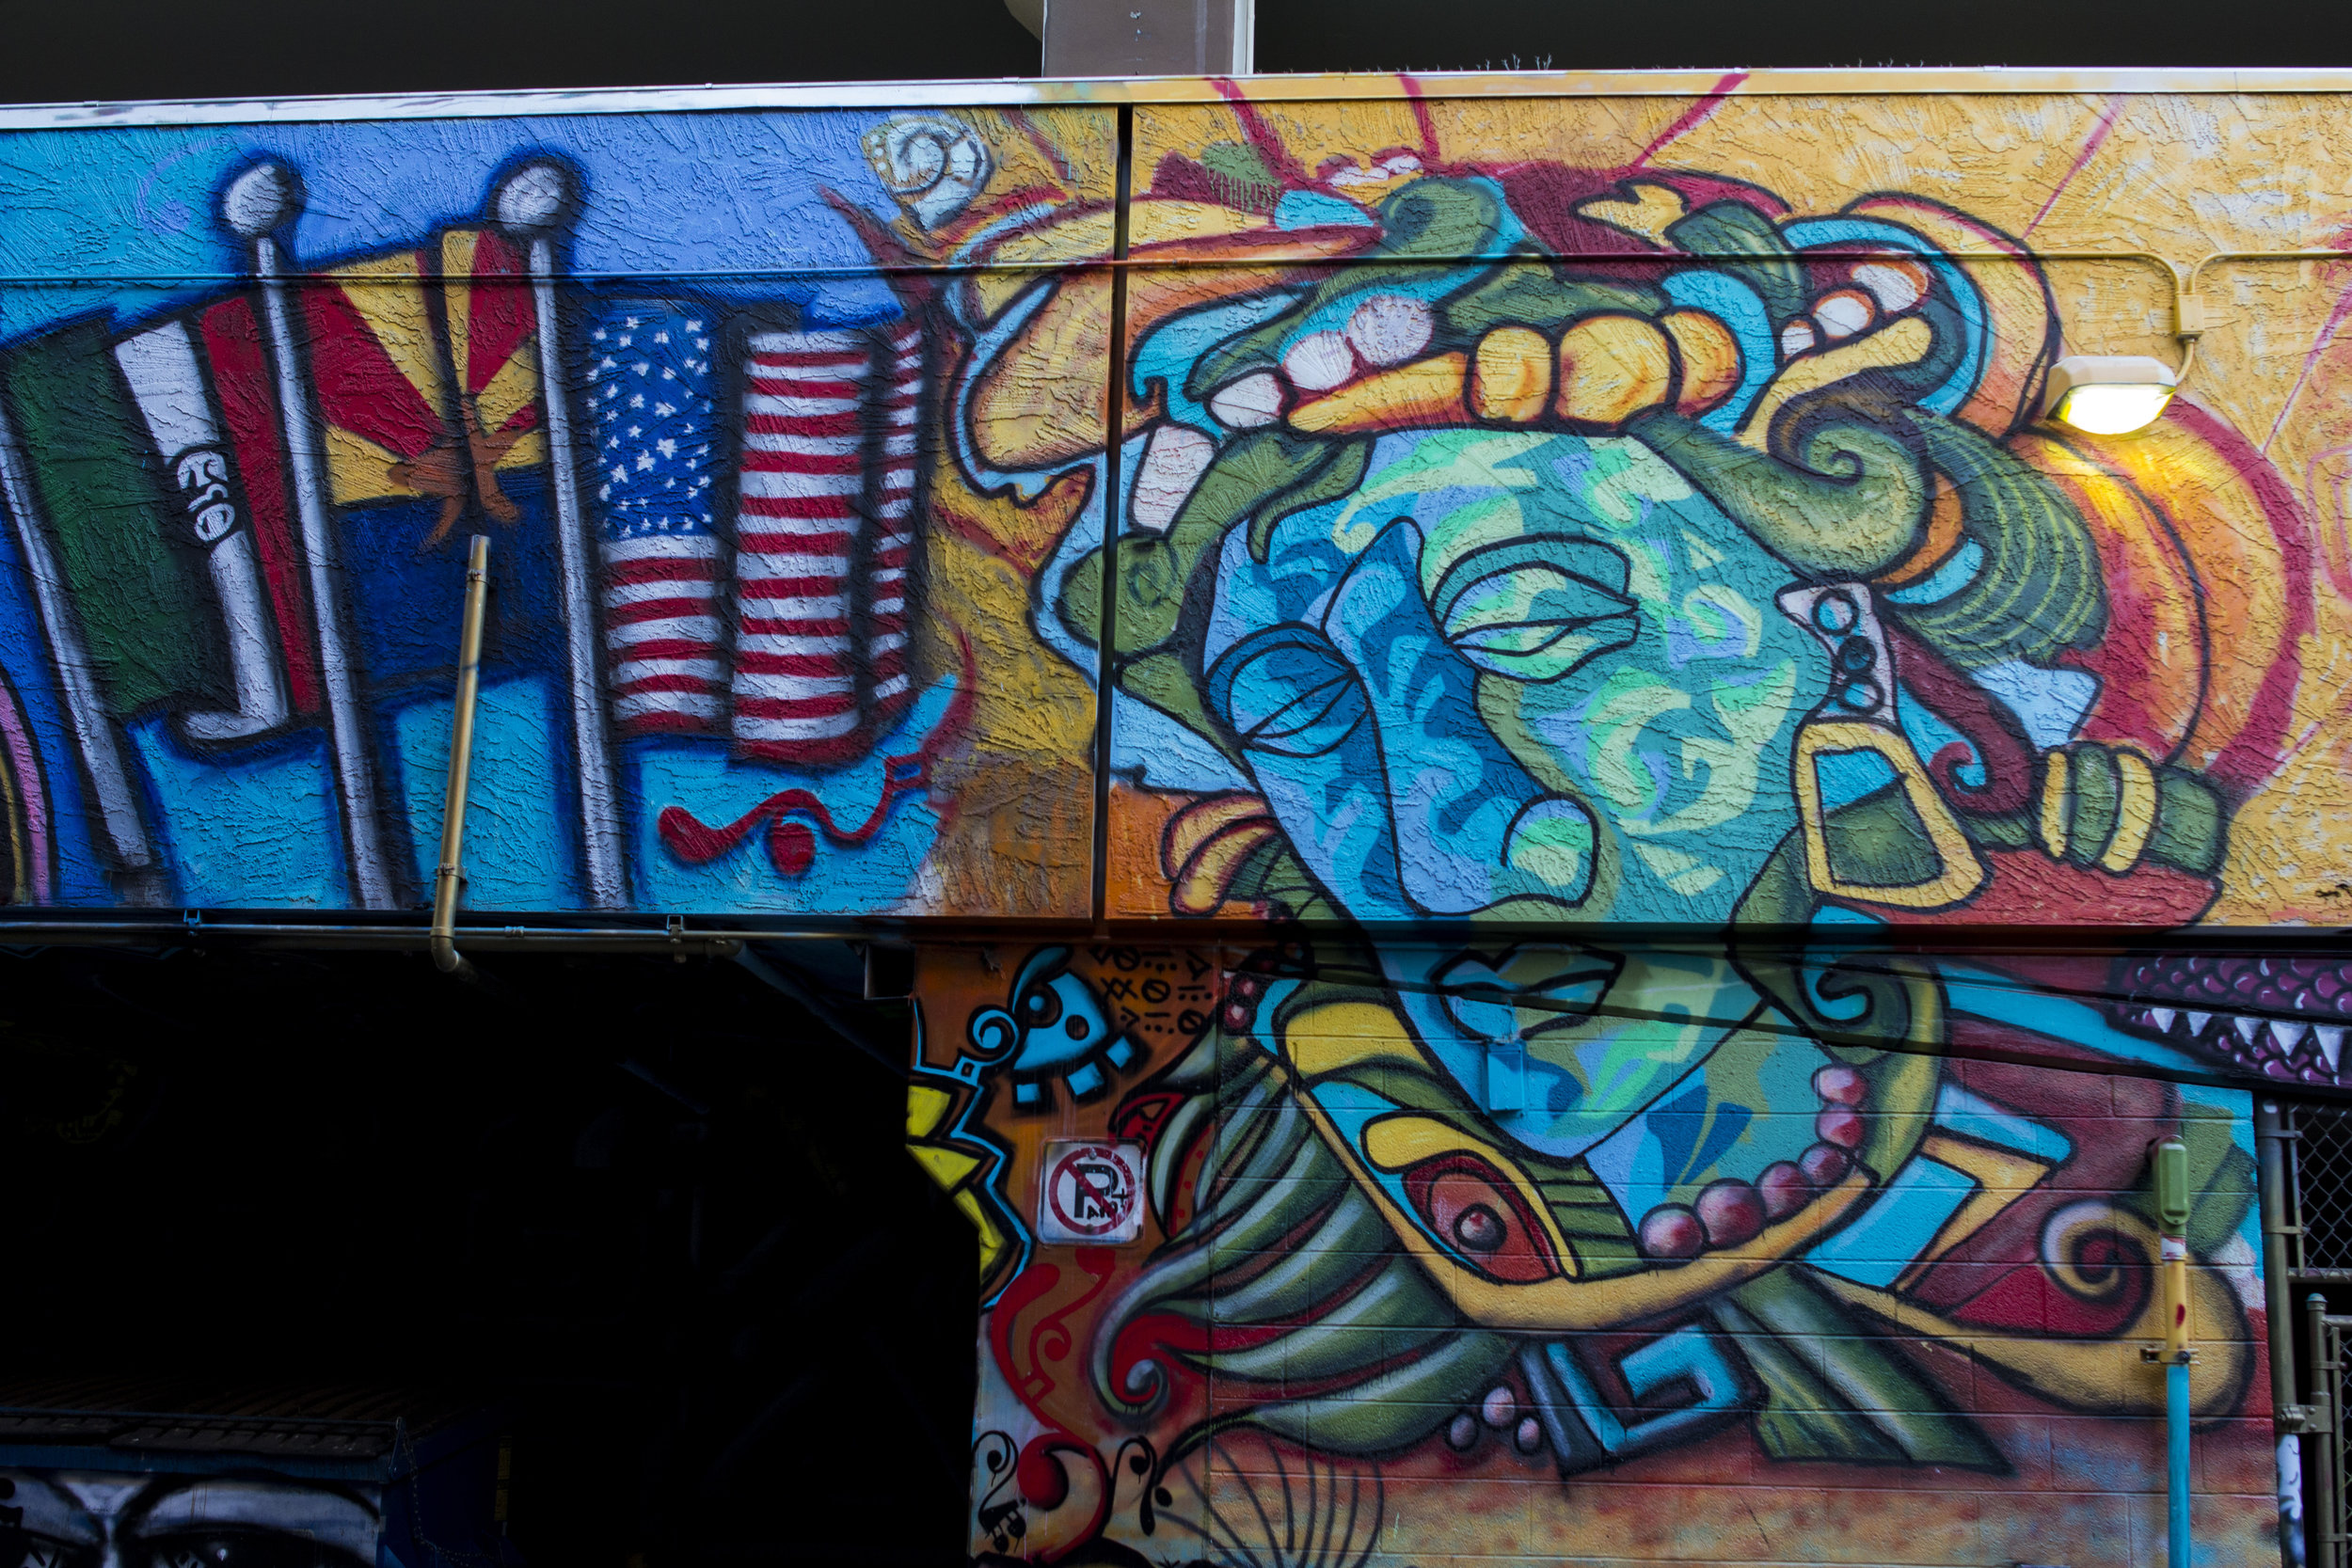 A piece of the mural by Roman P. Reyes. Photo by Brandon Salaz.